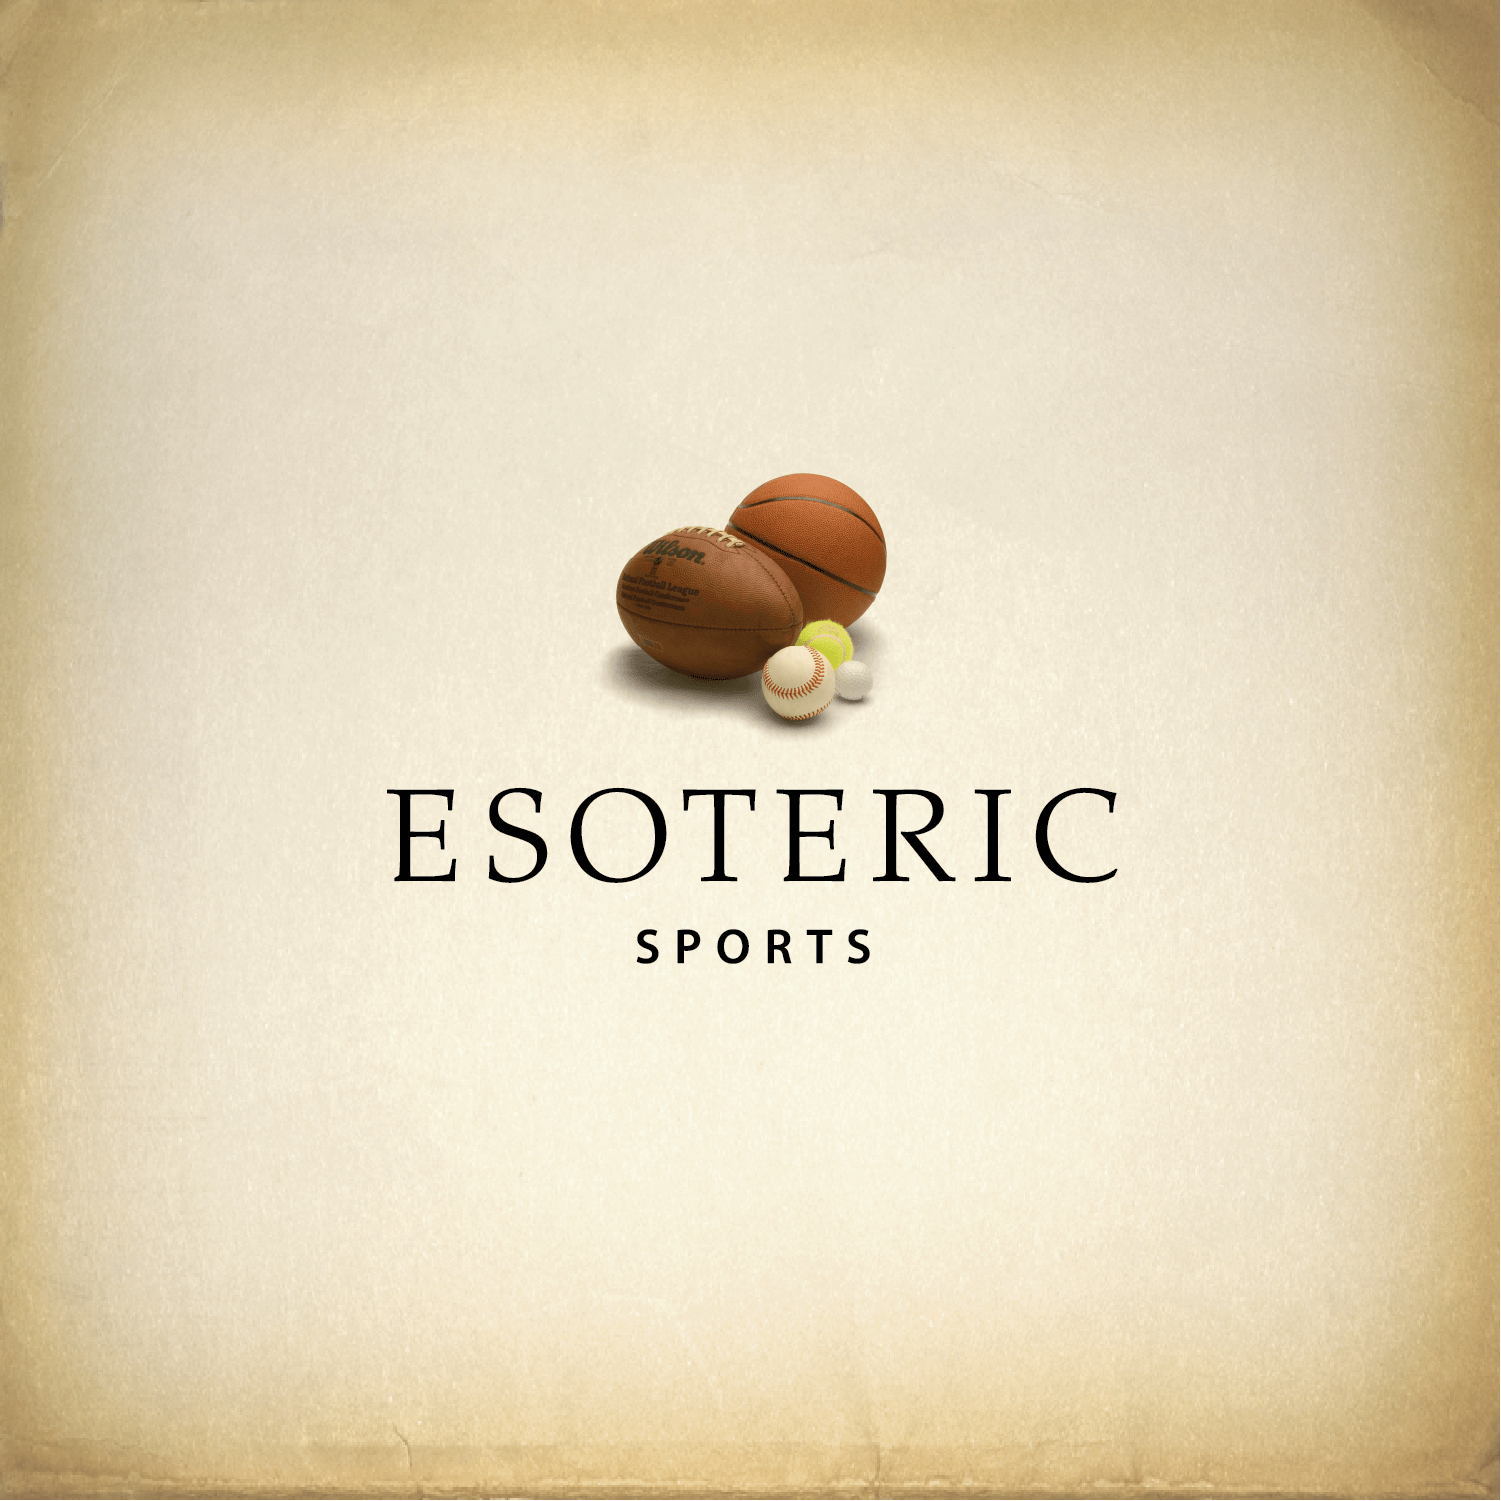 Esoteric Sports